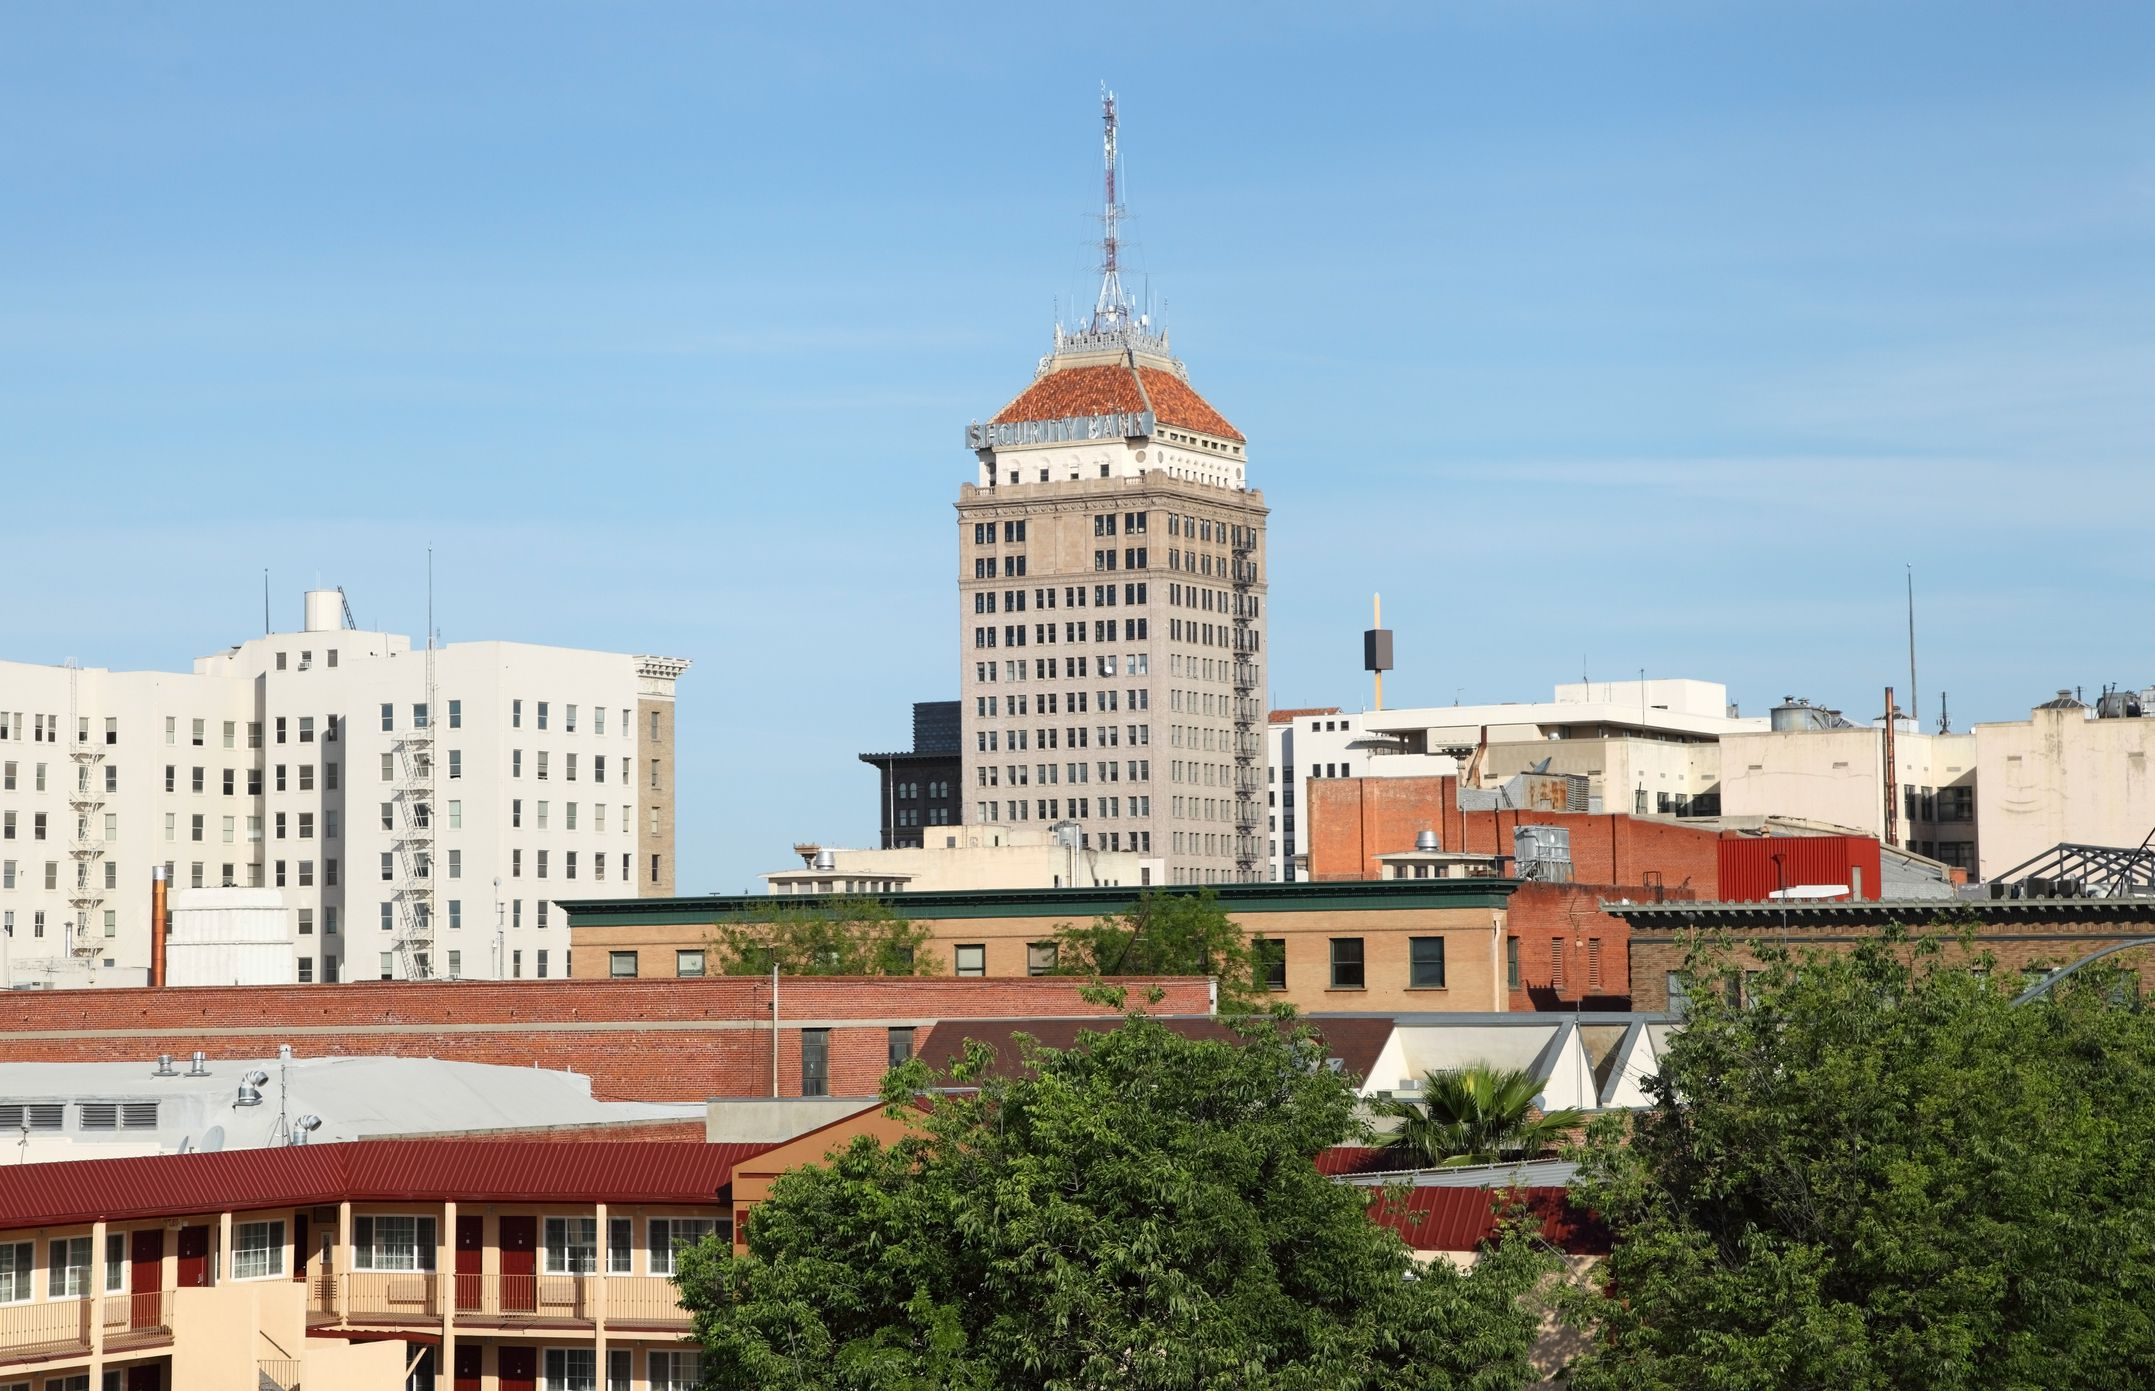 The Top 11 Things to Do in Fresno, California